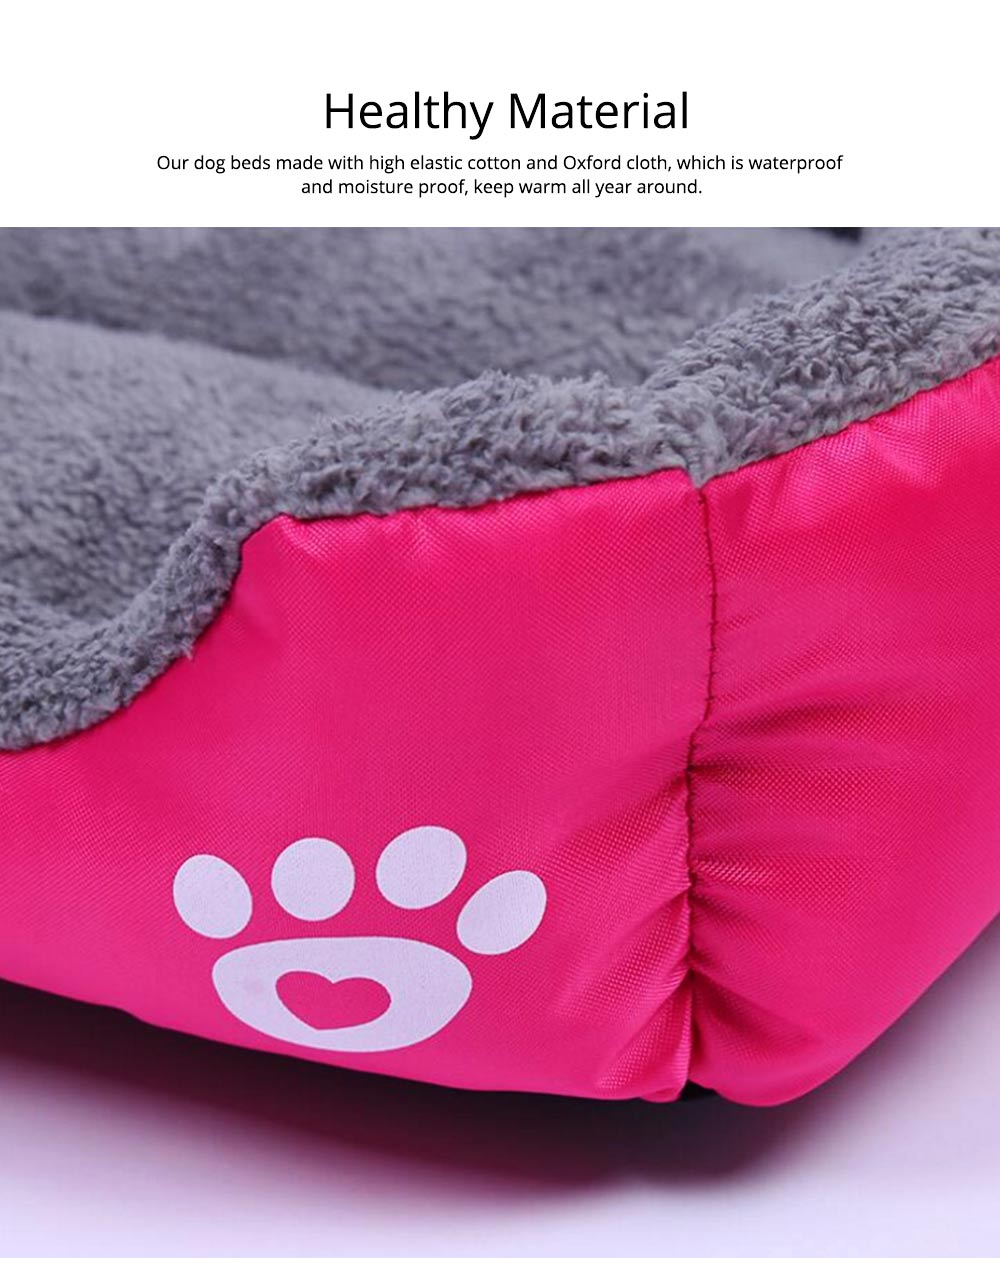 Super Soft Pet Sofa Dog Bed, Non Slip Bottom Pet Lounger, Self Warming and Breathable with Raised Rim Pet House 1